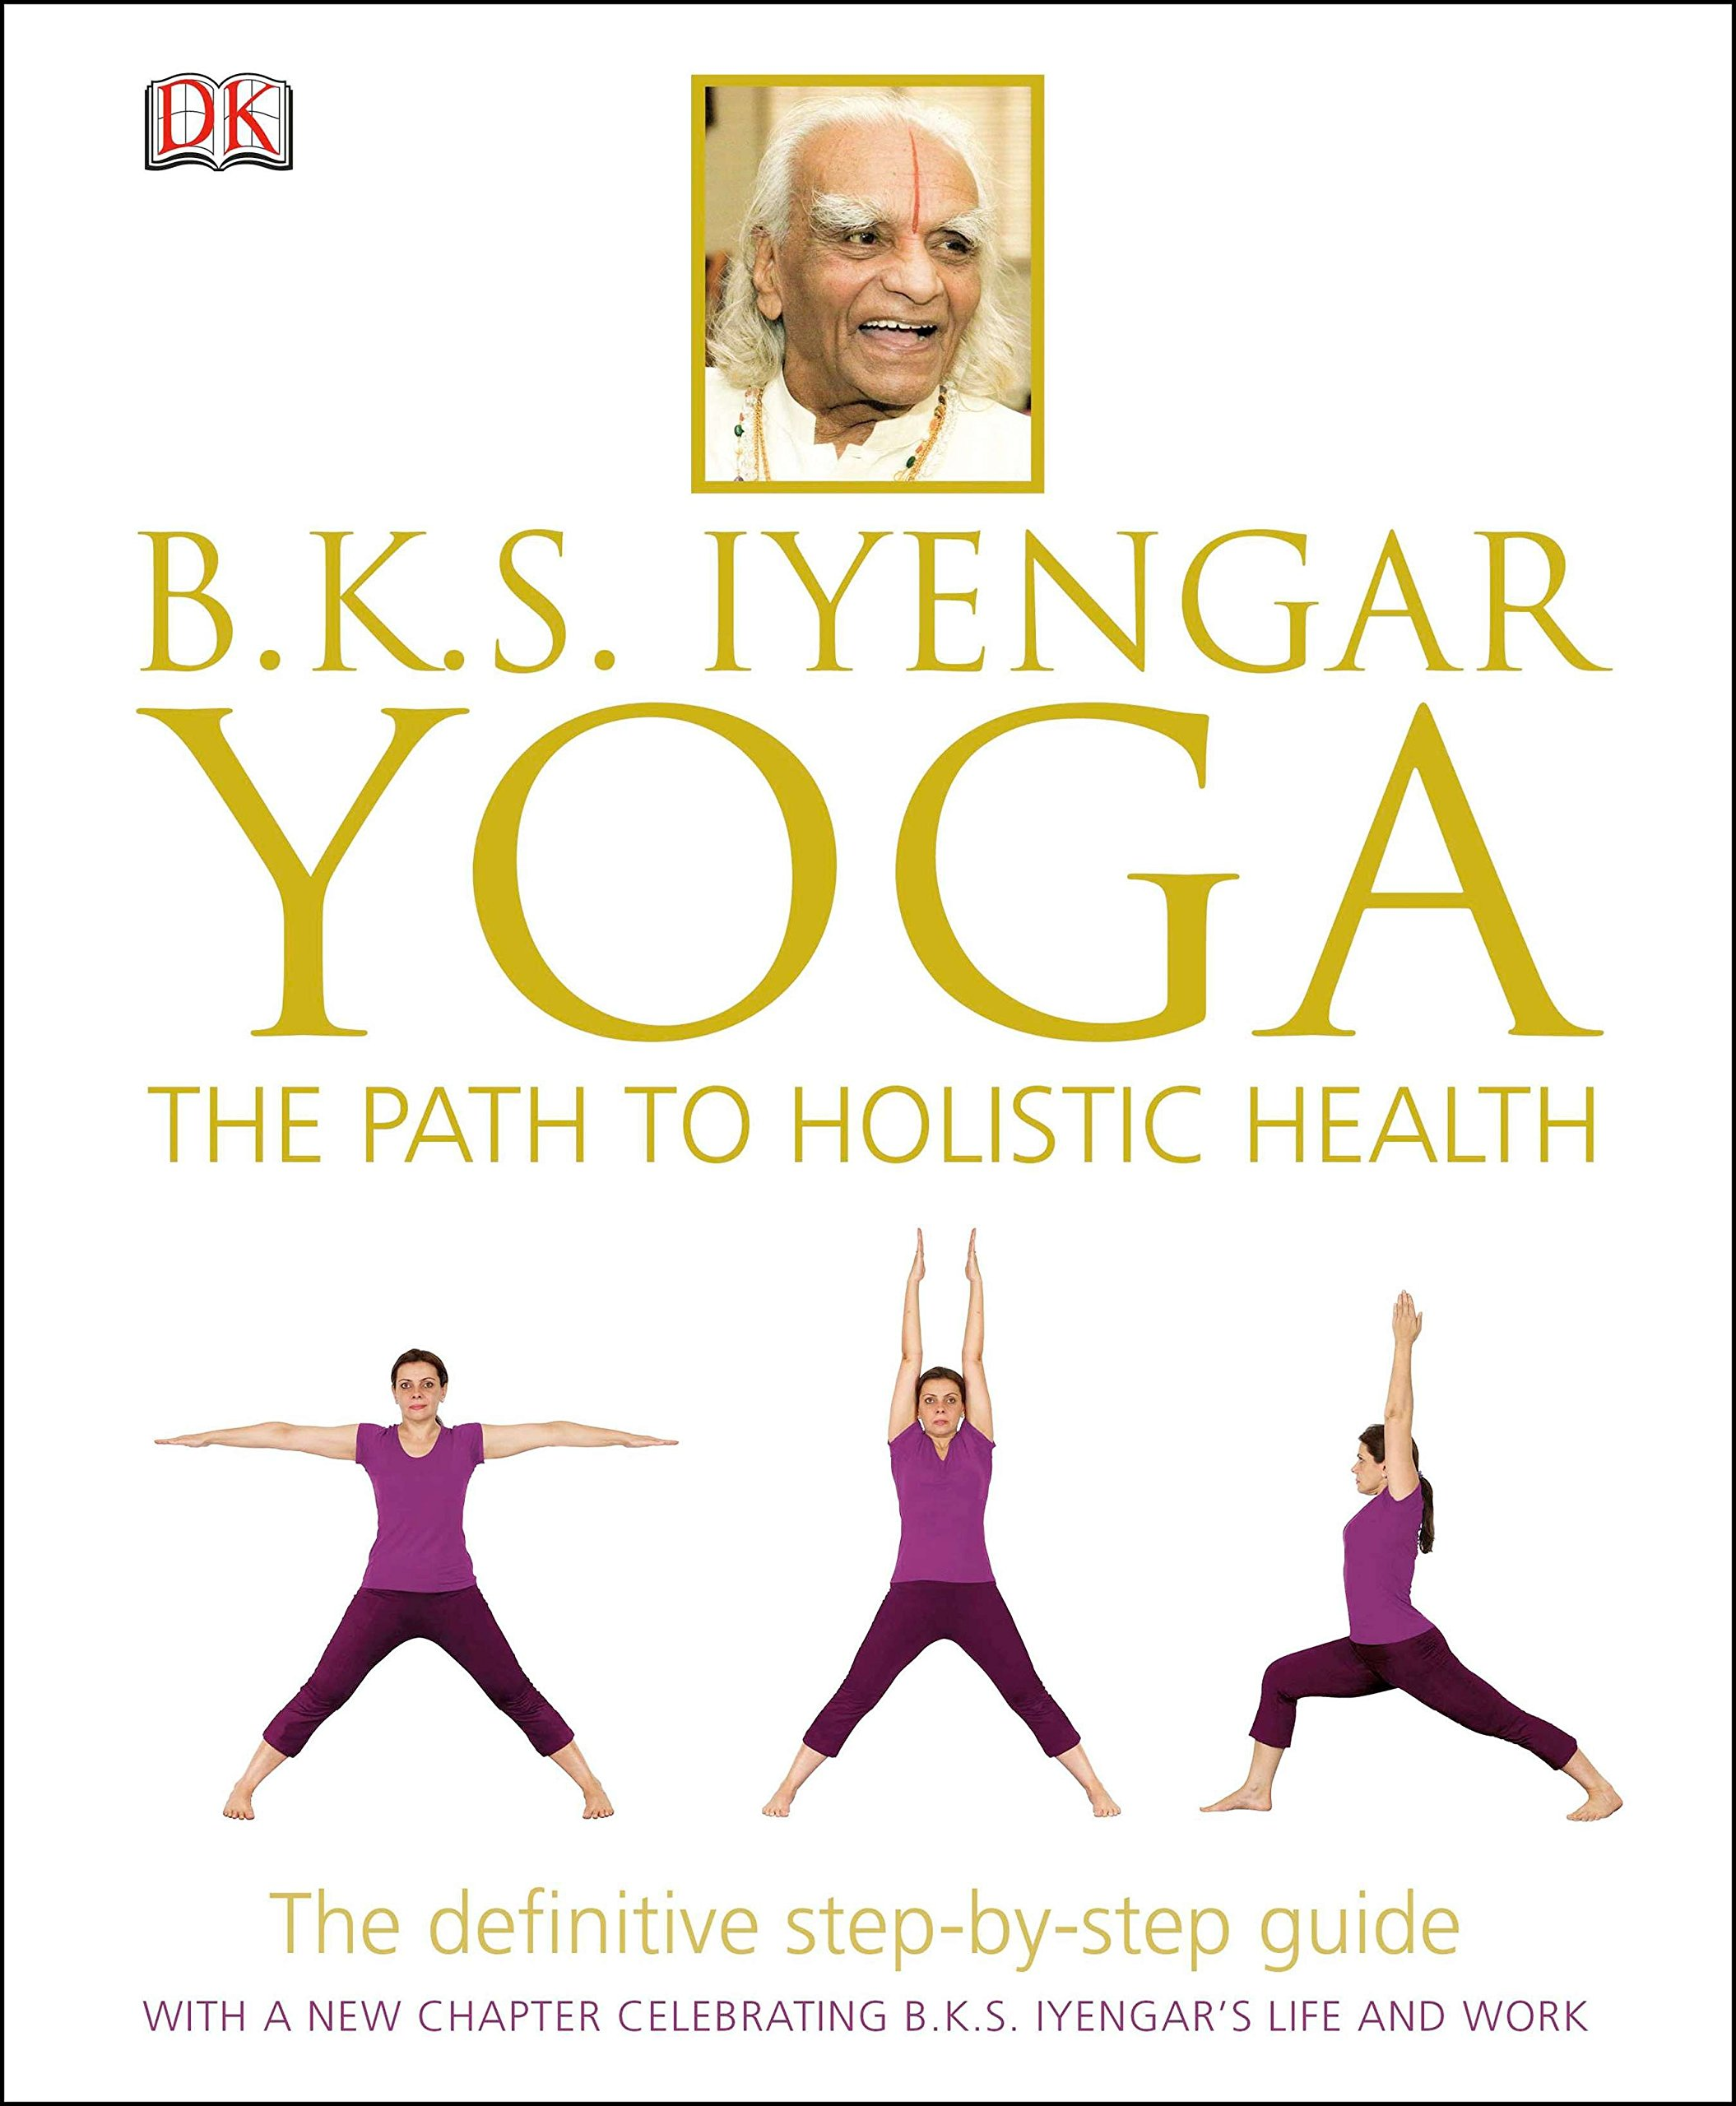 B K S Iyengar Yoga The Path To Holistic Health Iyengar B K S 9781465415837 Amazon Com Books